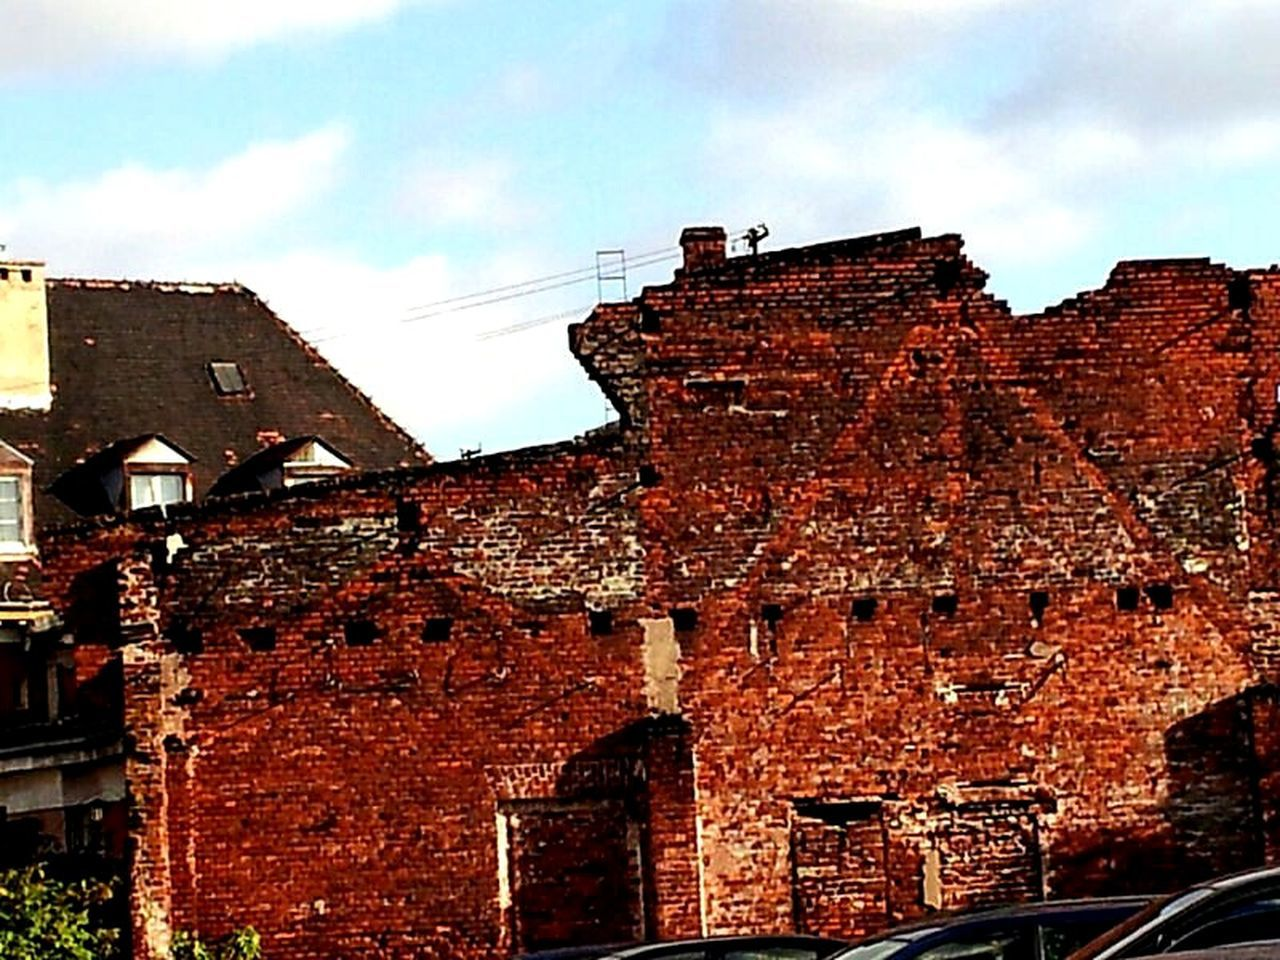 architecture, built structure, building exterior, cloud - sky, brick wall, sky, low angle view, no people, day, red, abandoned, outdoors